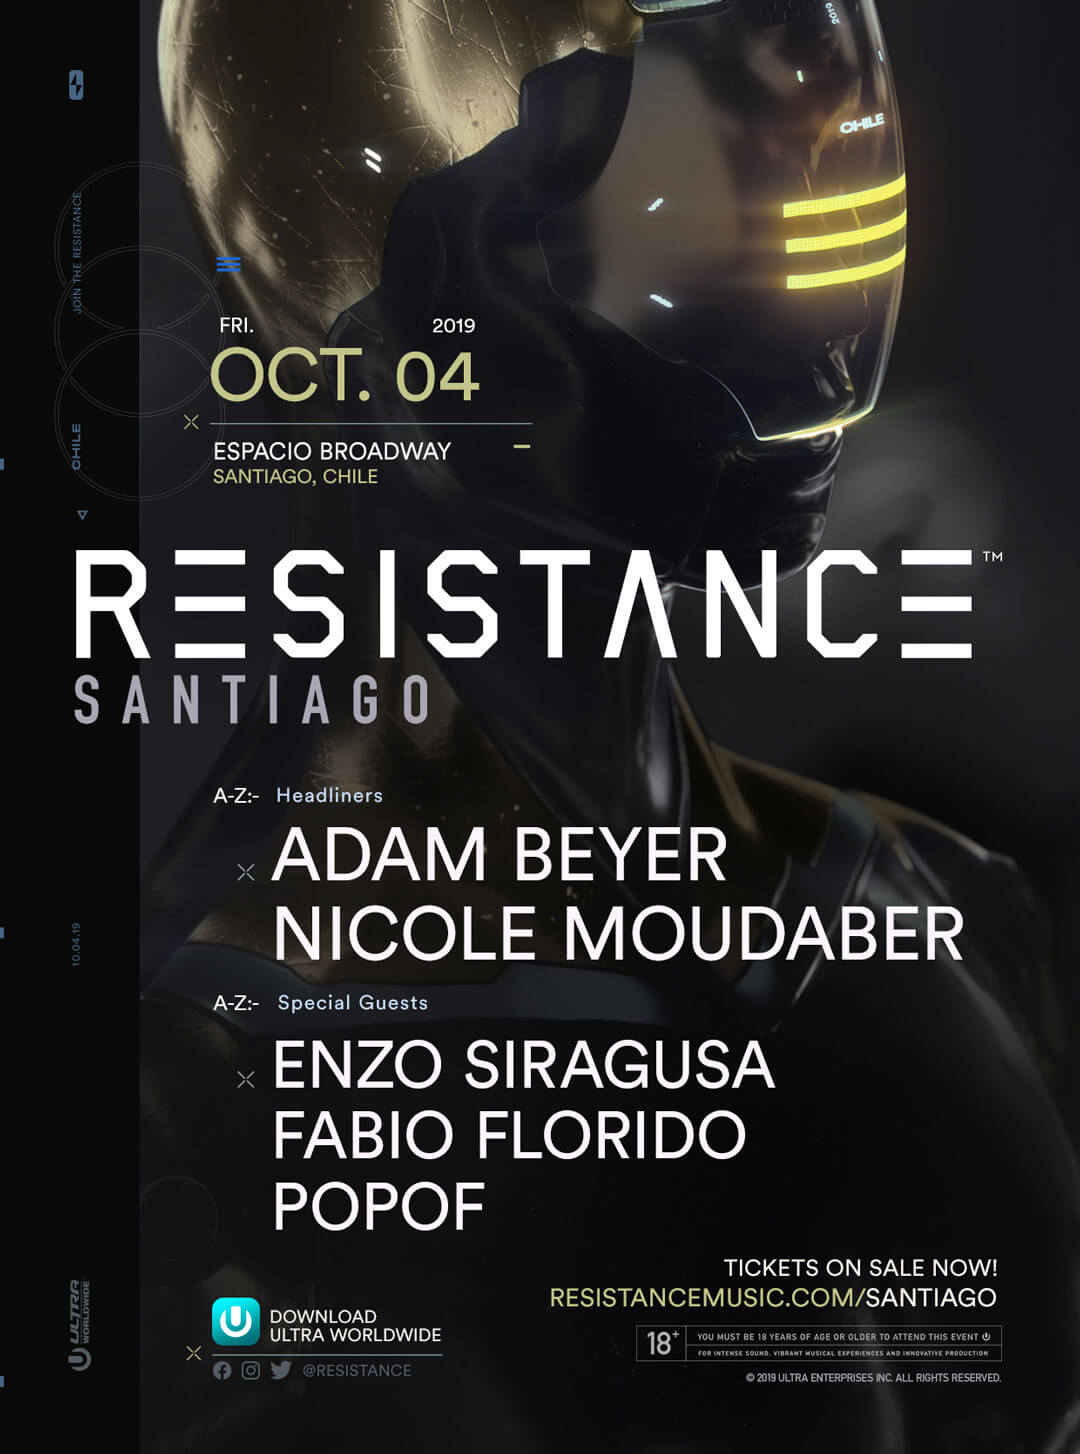 Adam Beyer and Nicole Moudaber to Headline RESISTANCE Santiago